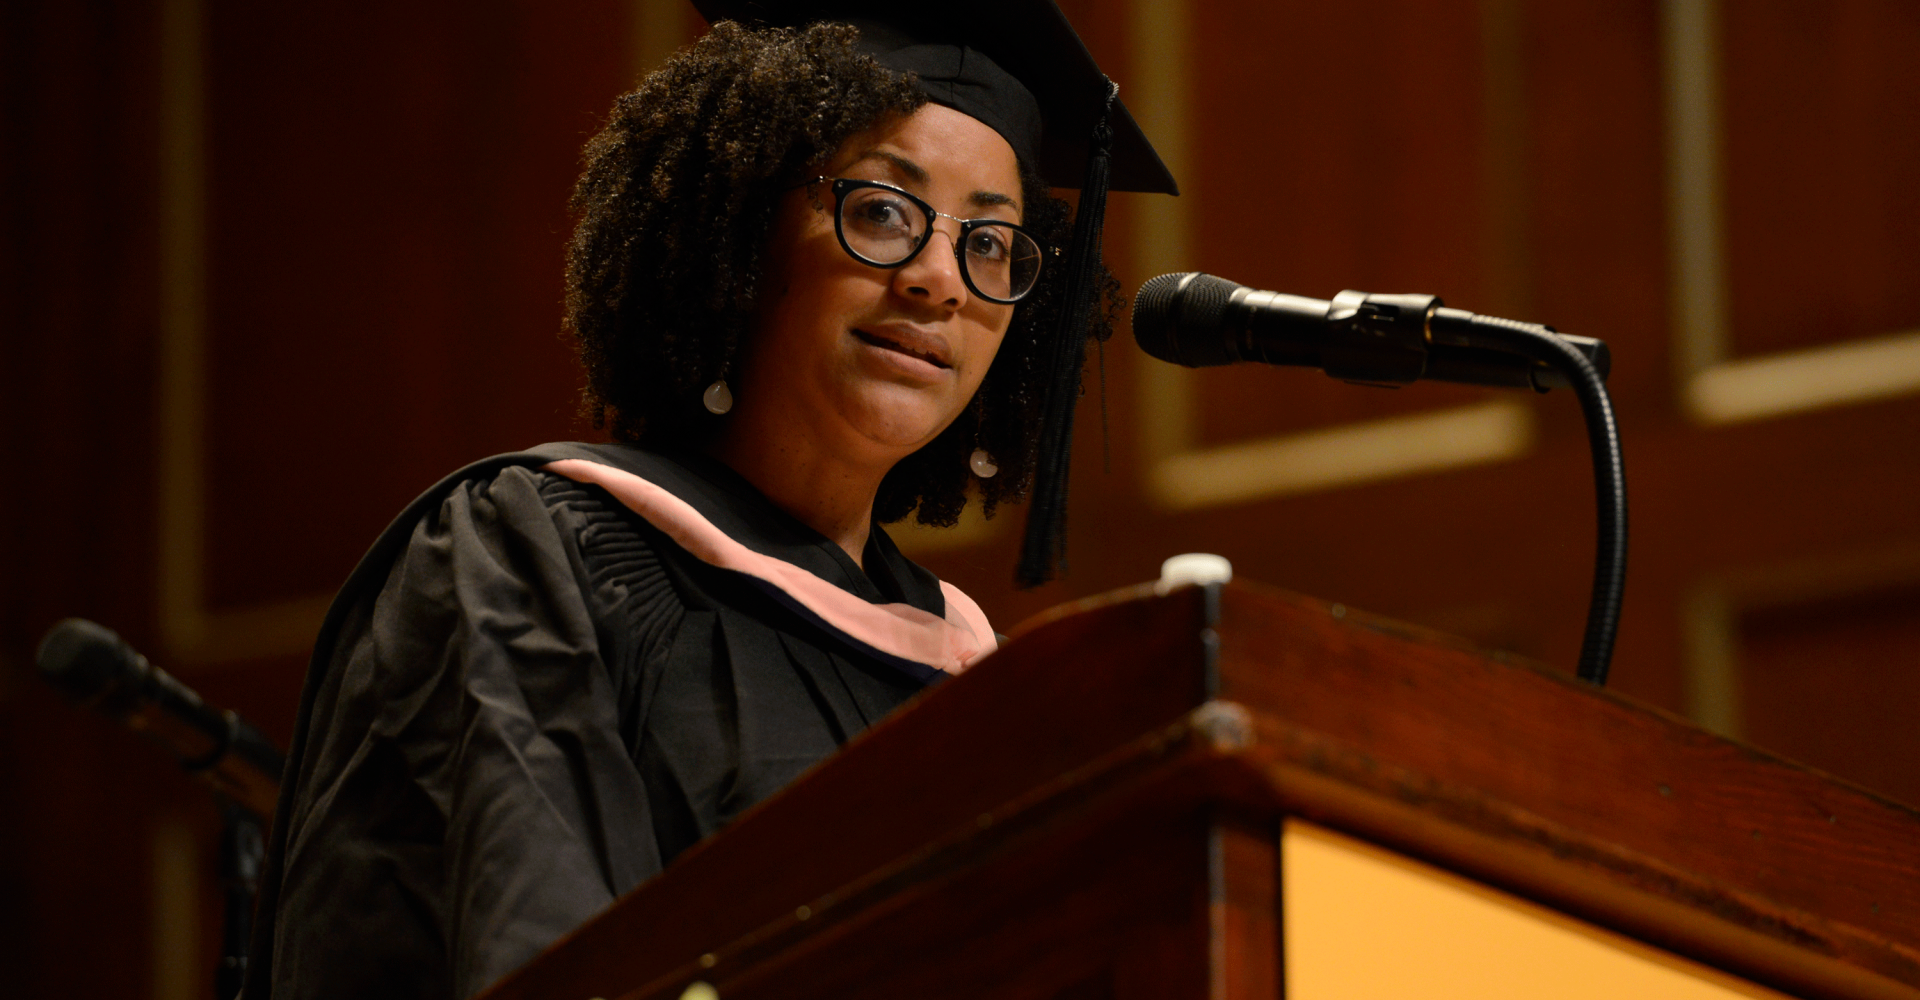 Ashleigh Gordon speaks at the podium during Commencement 2019